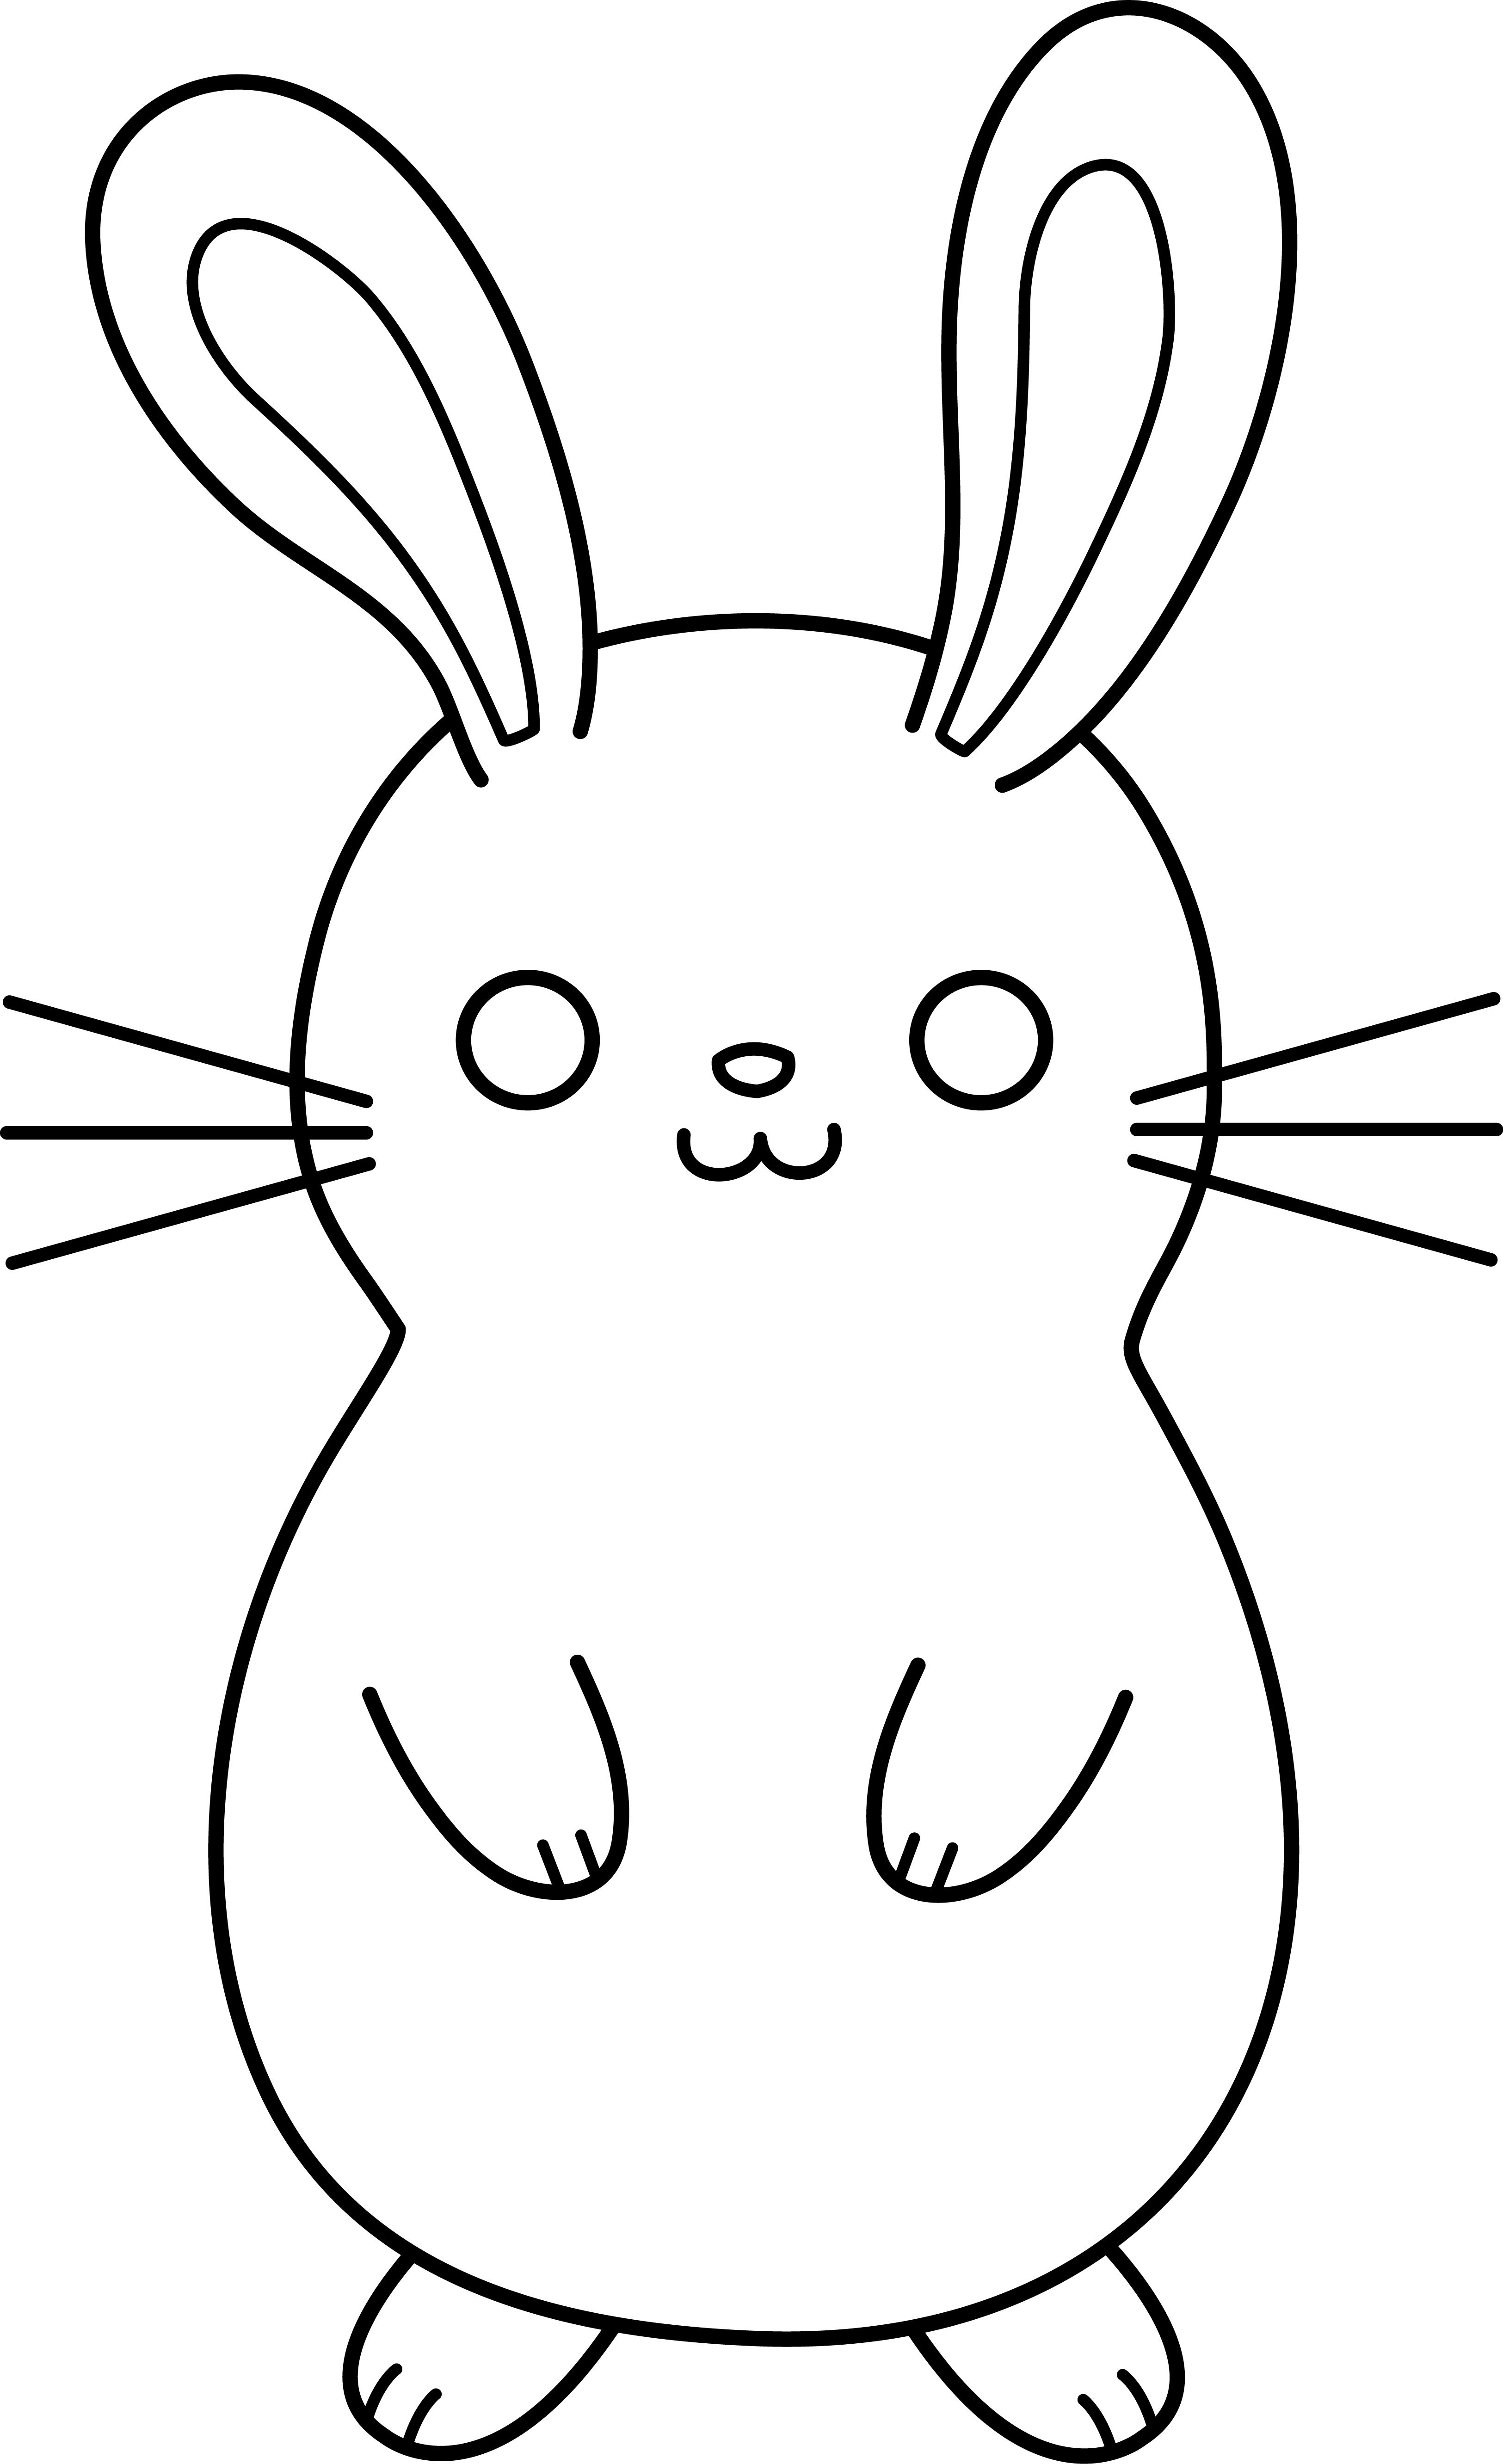 Drawing bunnies small. Cute colorable easter bunny